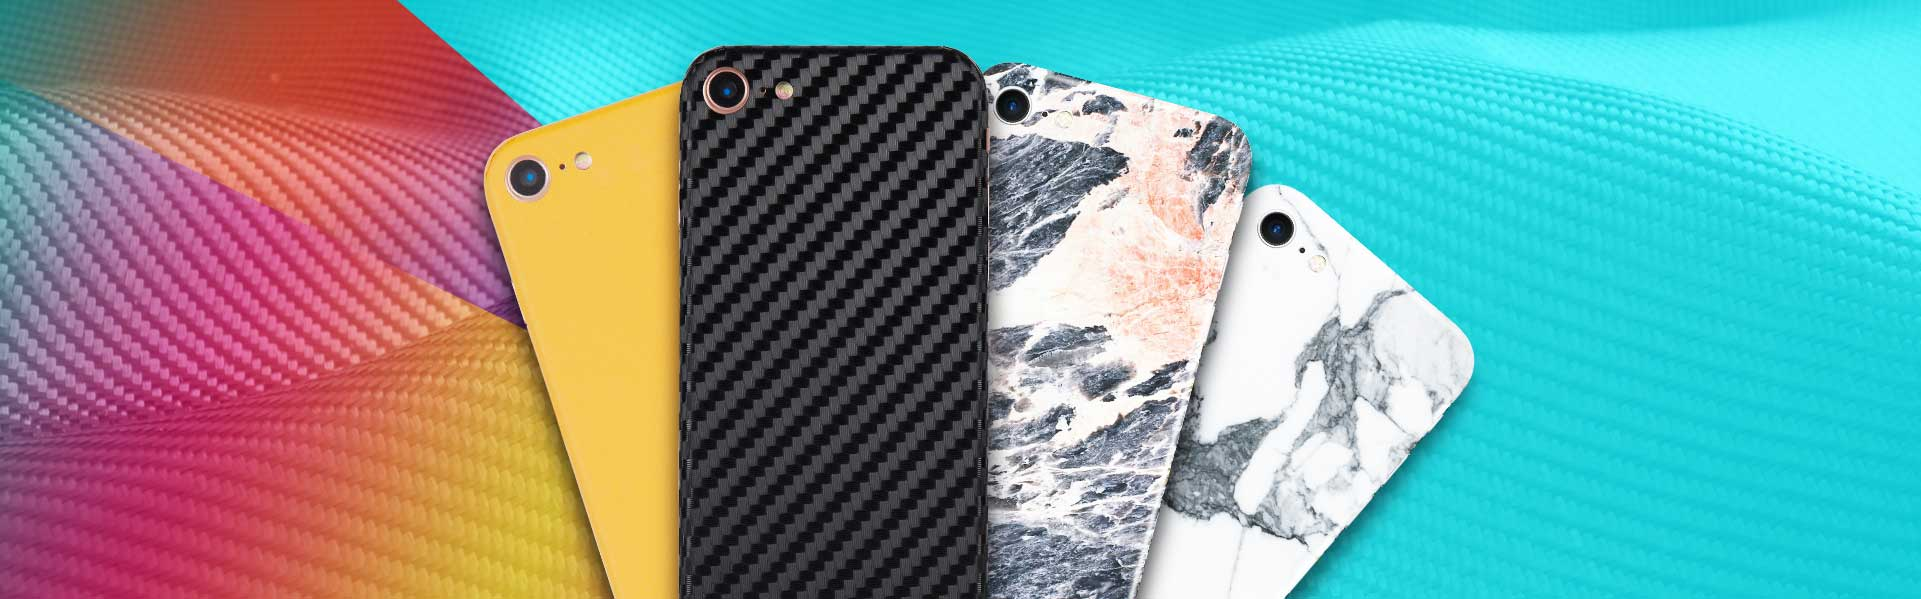 Phone Textured Skin Covers - Price in Dubai and UAE | Switch